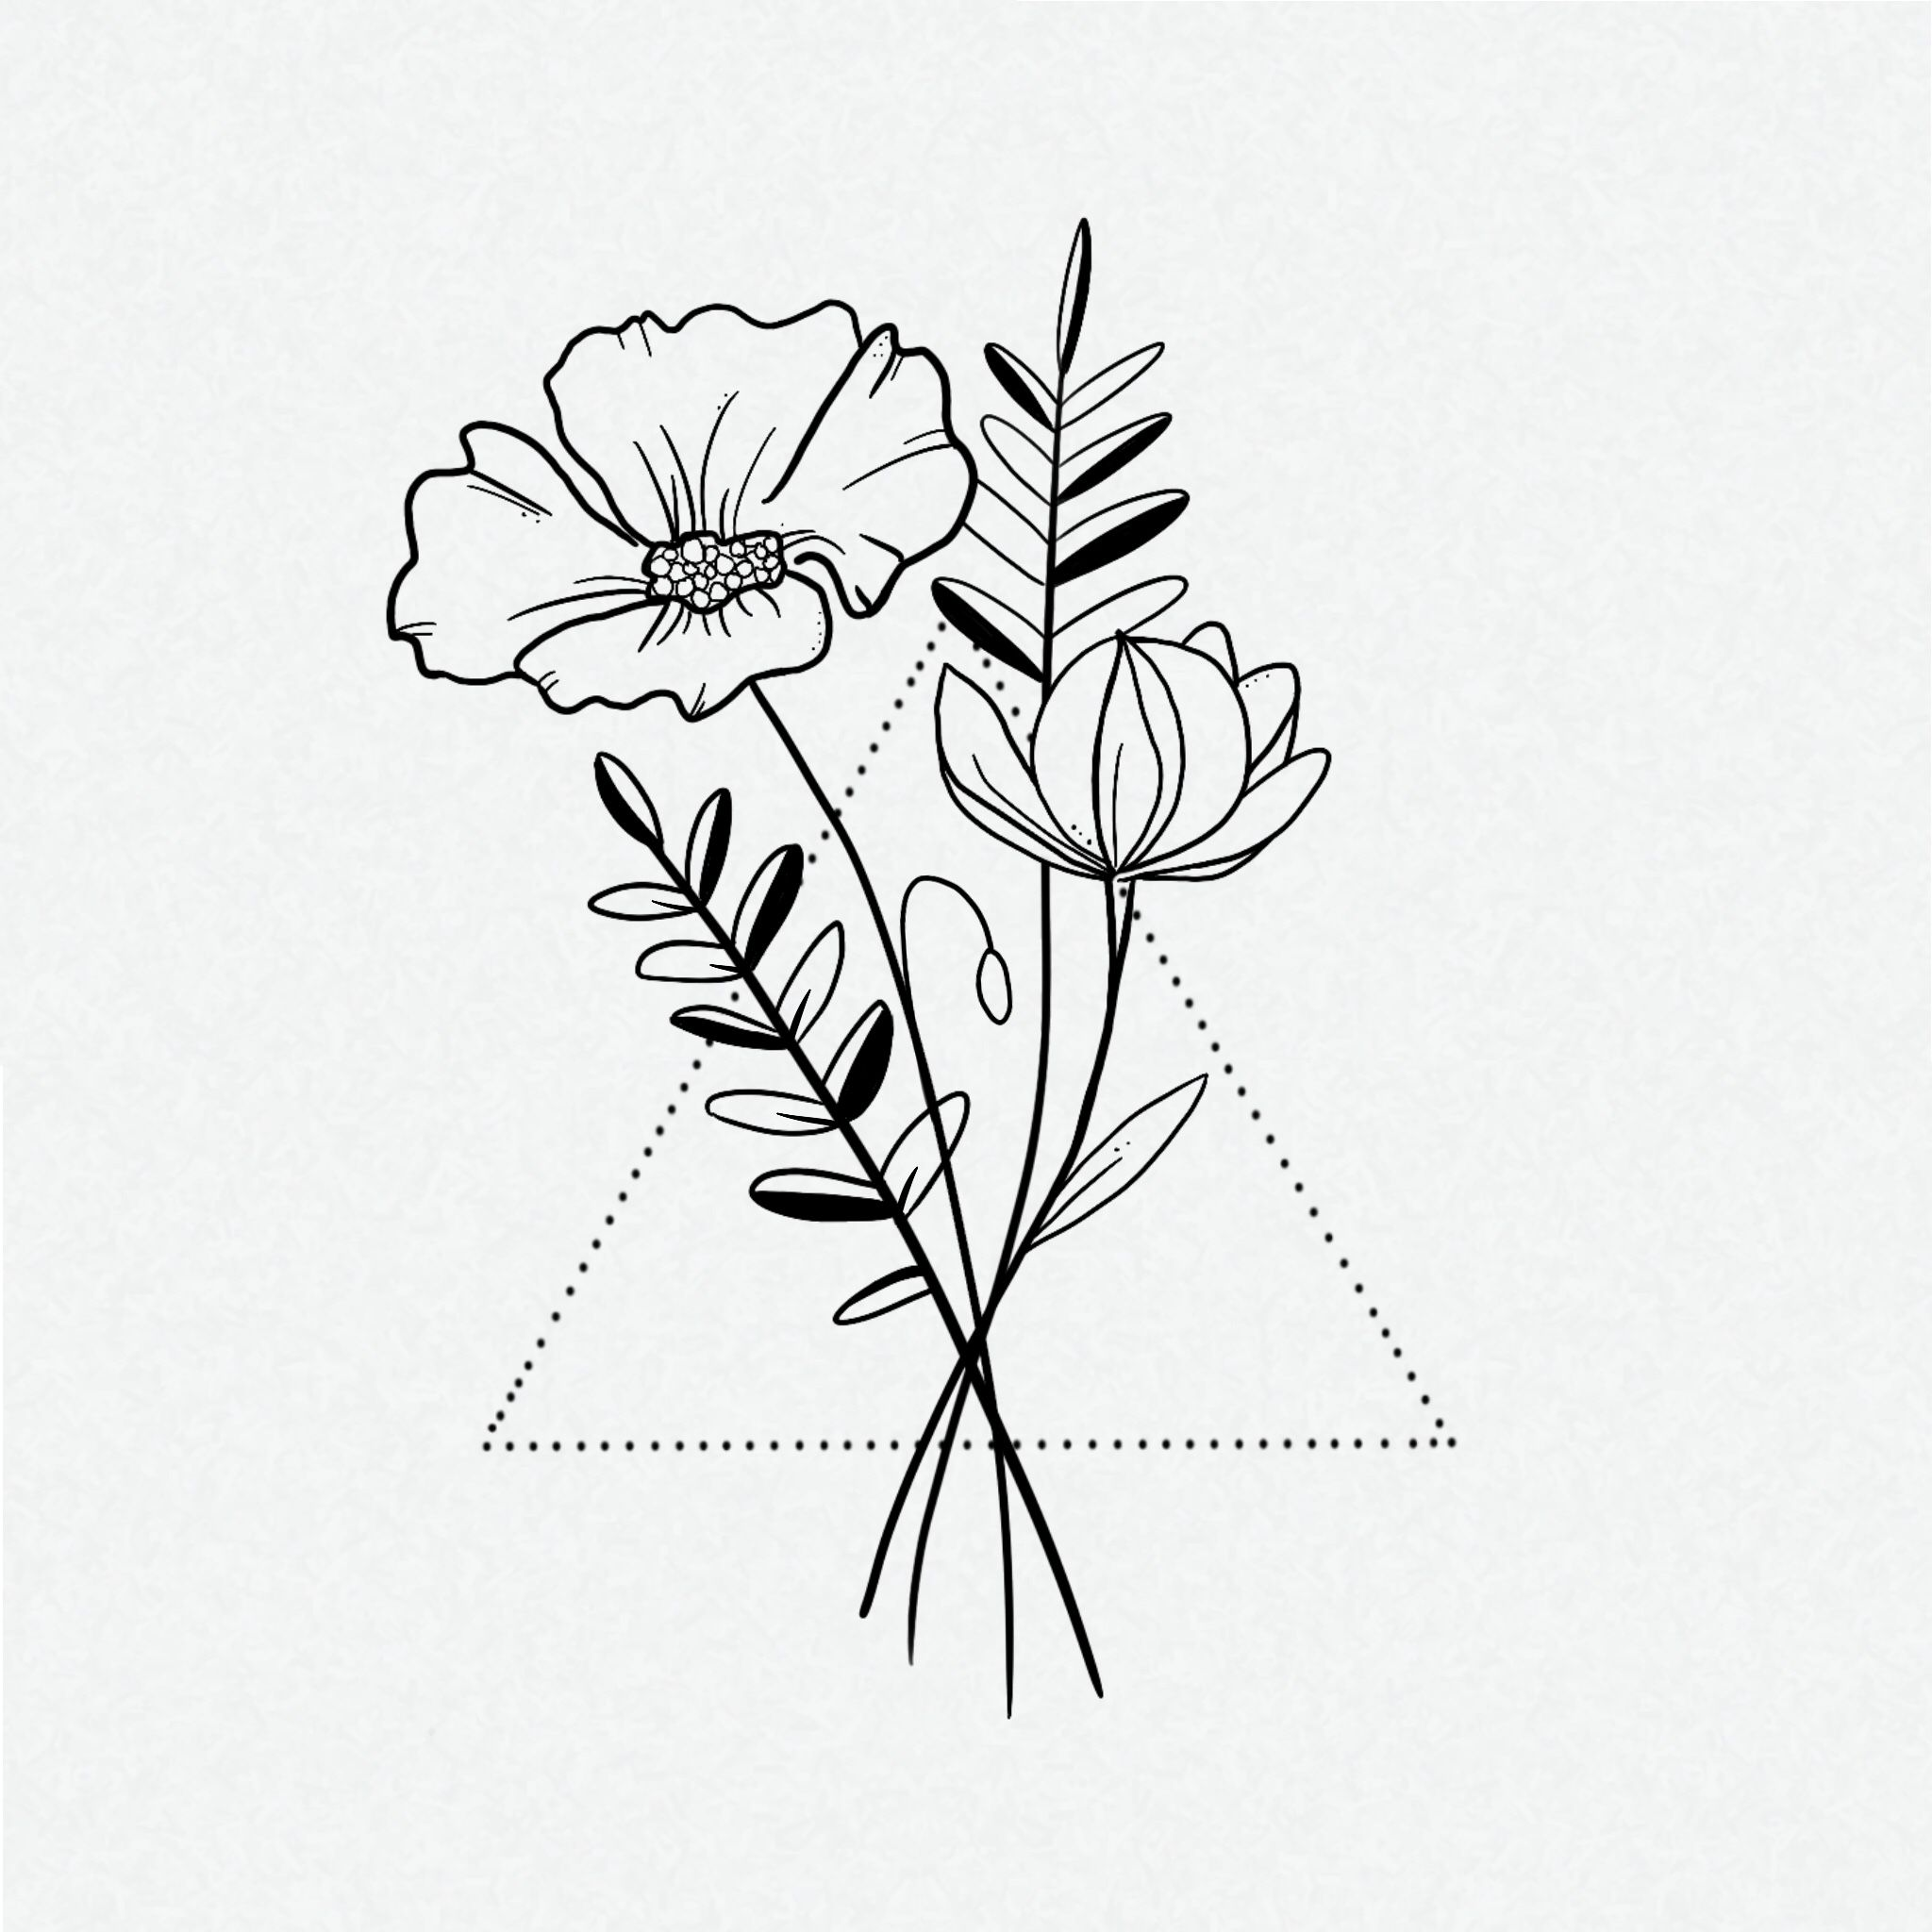 Minimalistic Flower Illustration Design By Studio Lois Flower Illustration Geometric Flower Tattoo Flower Graphic